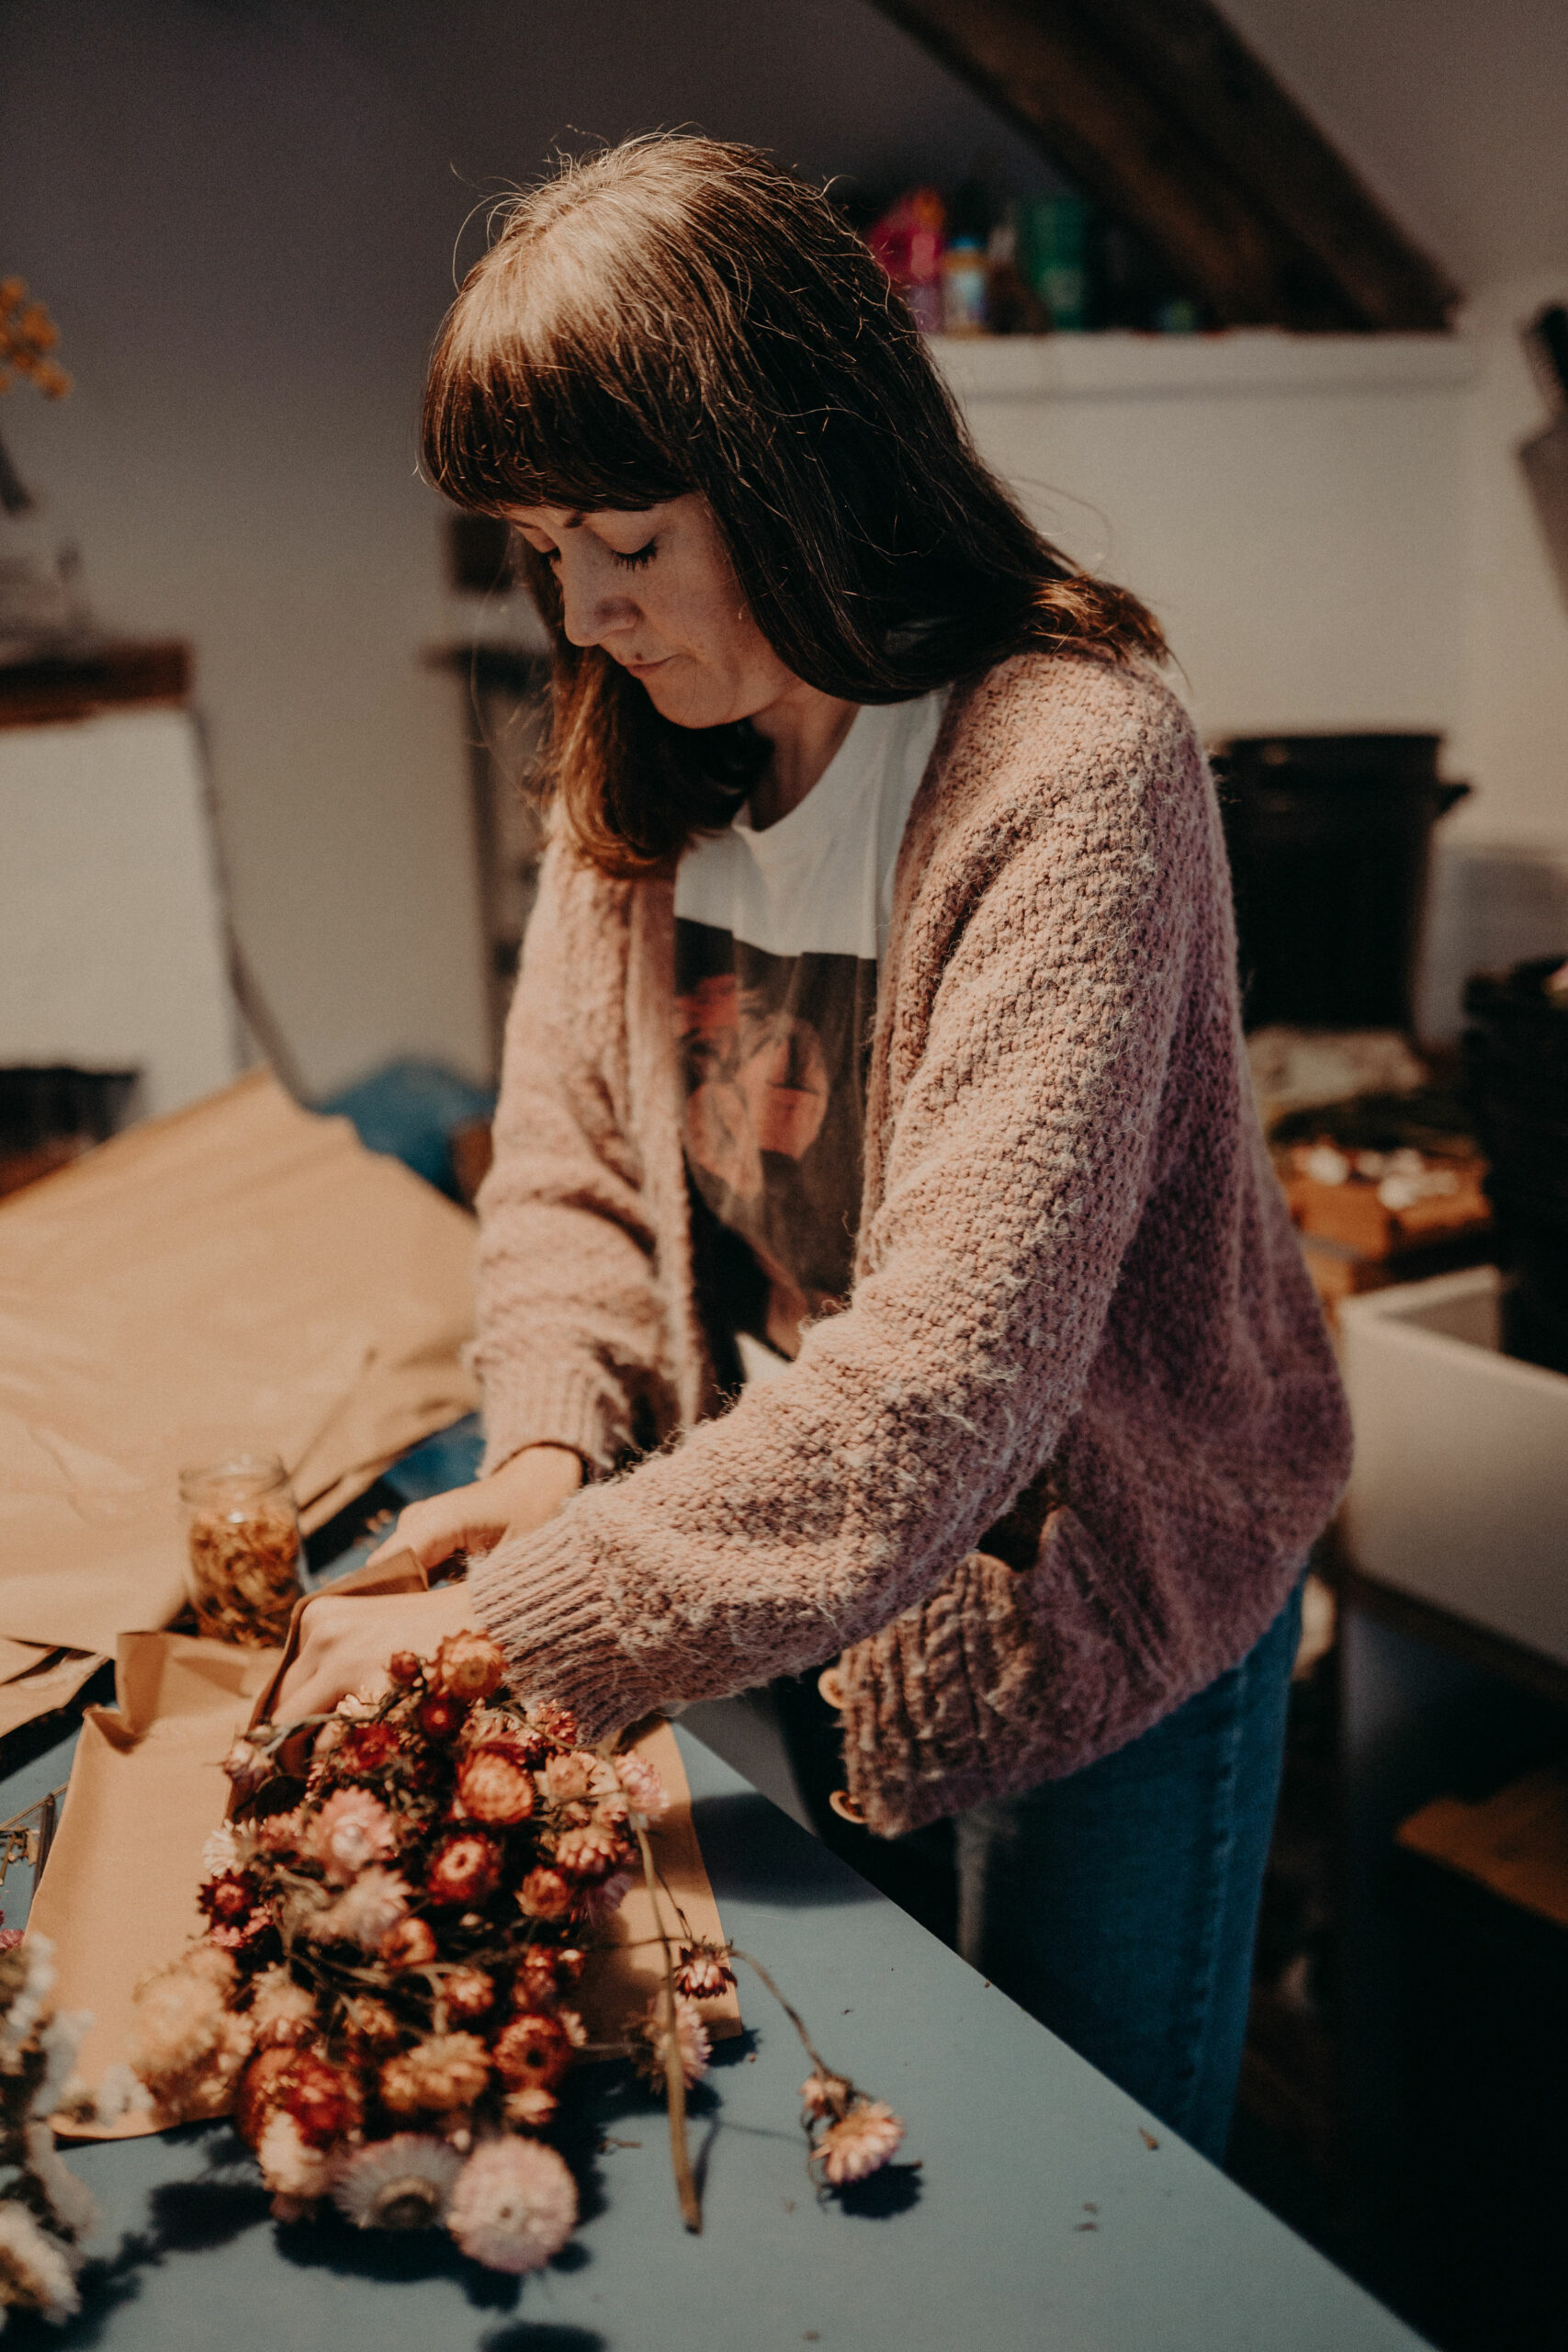 Lucy Marshall of Deadhead Flower Farm wrapping bunches of dried flowers grown and dried at her farm